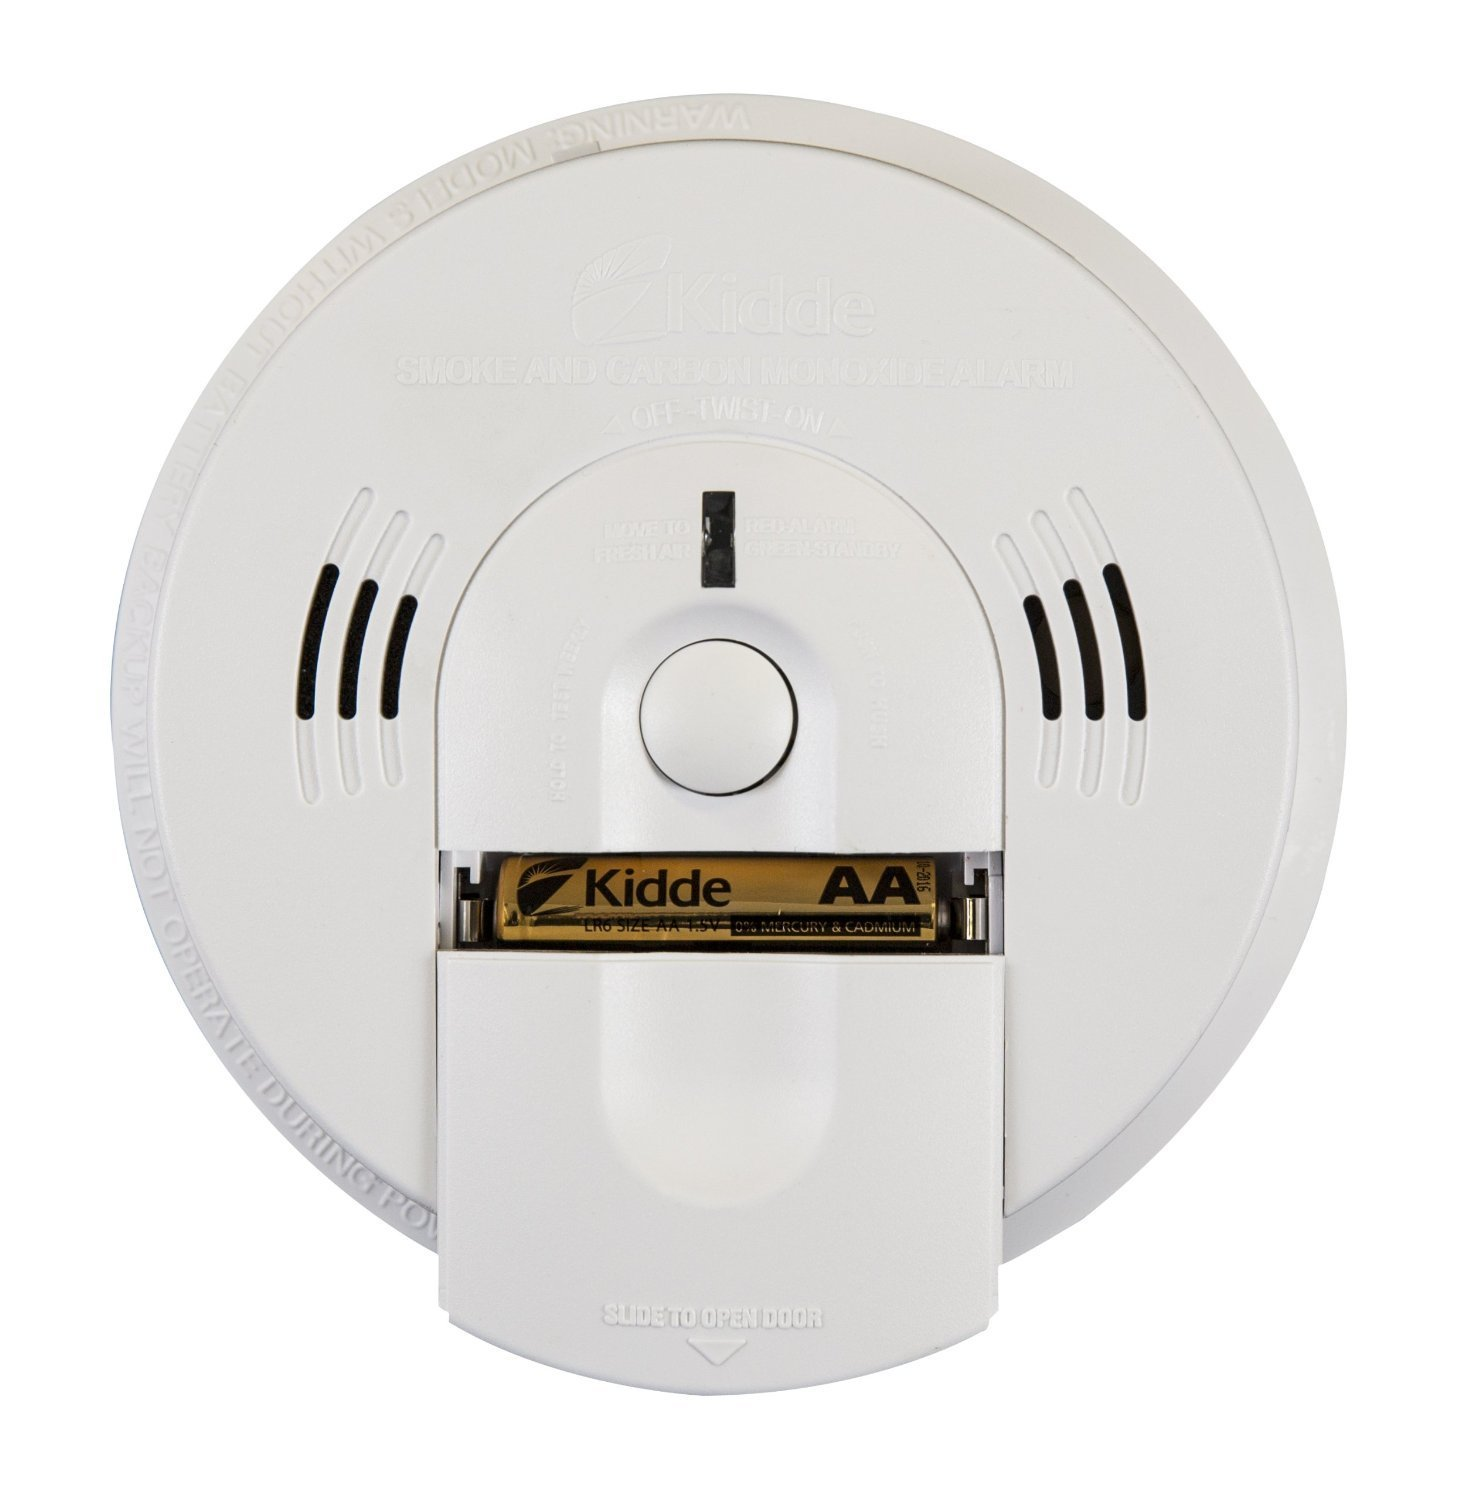 firex smoke and carbon monoxide alarm amazon com